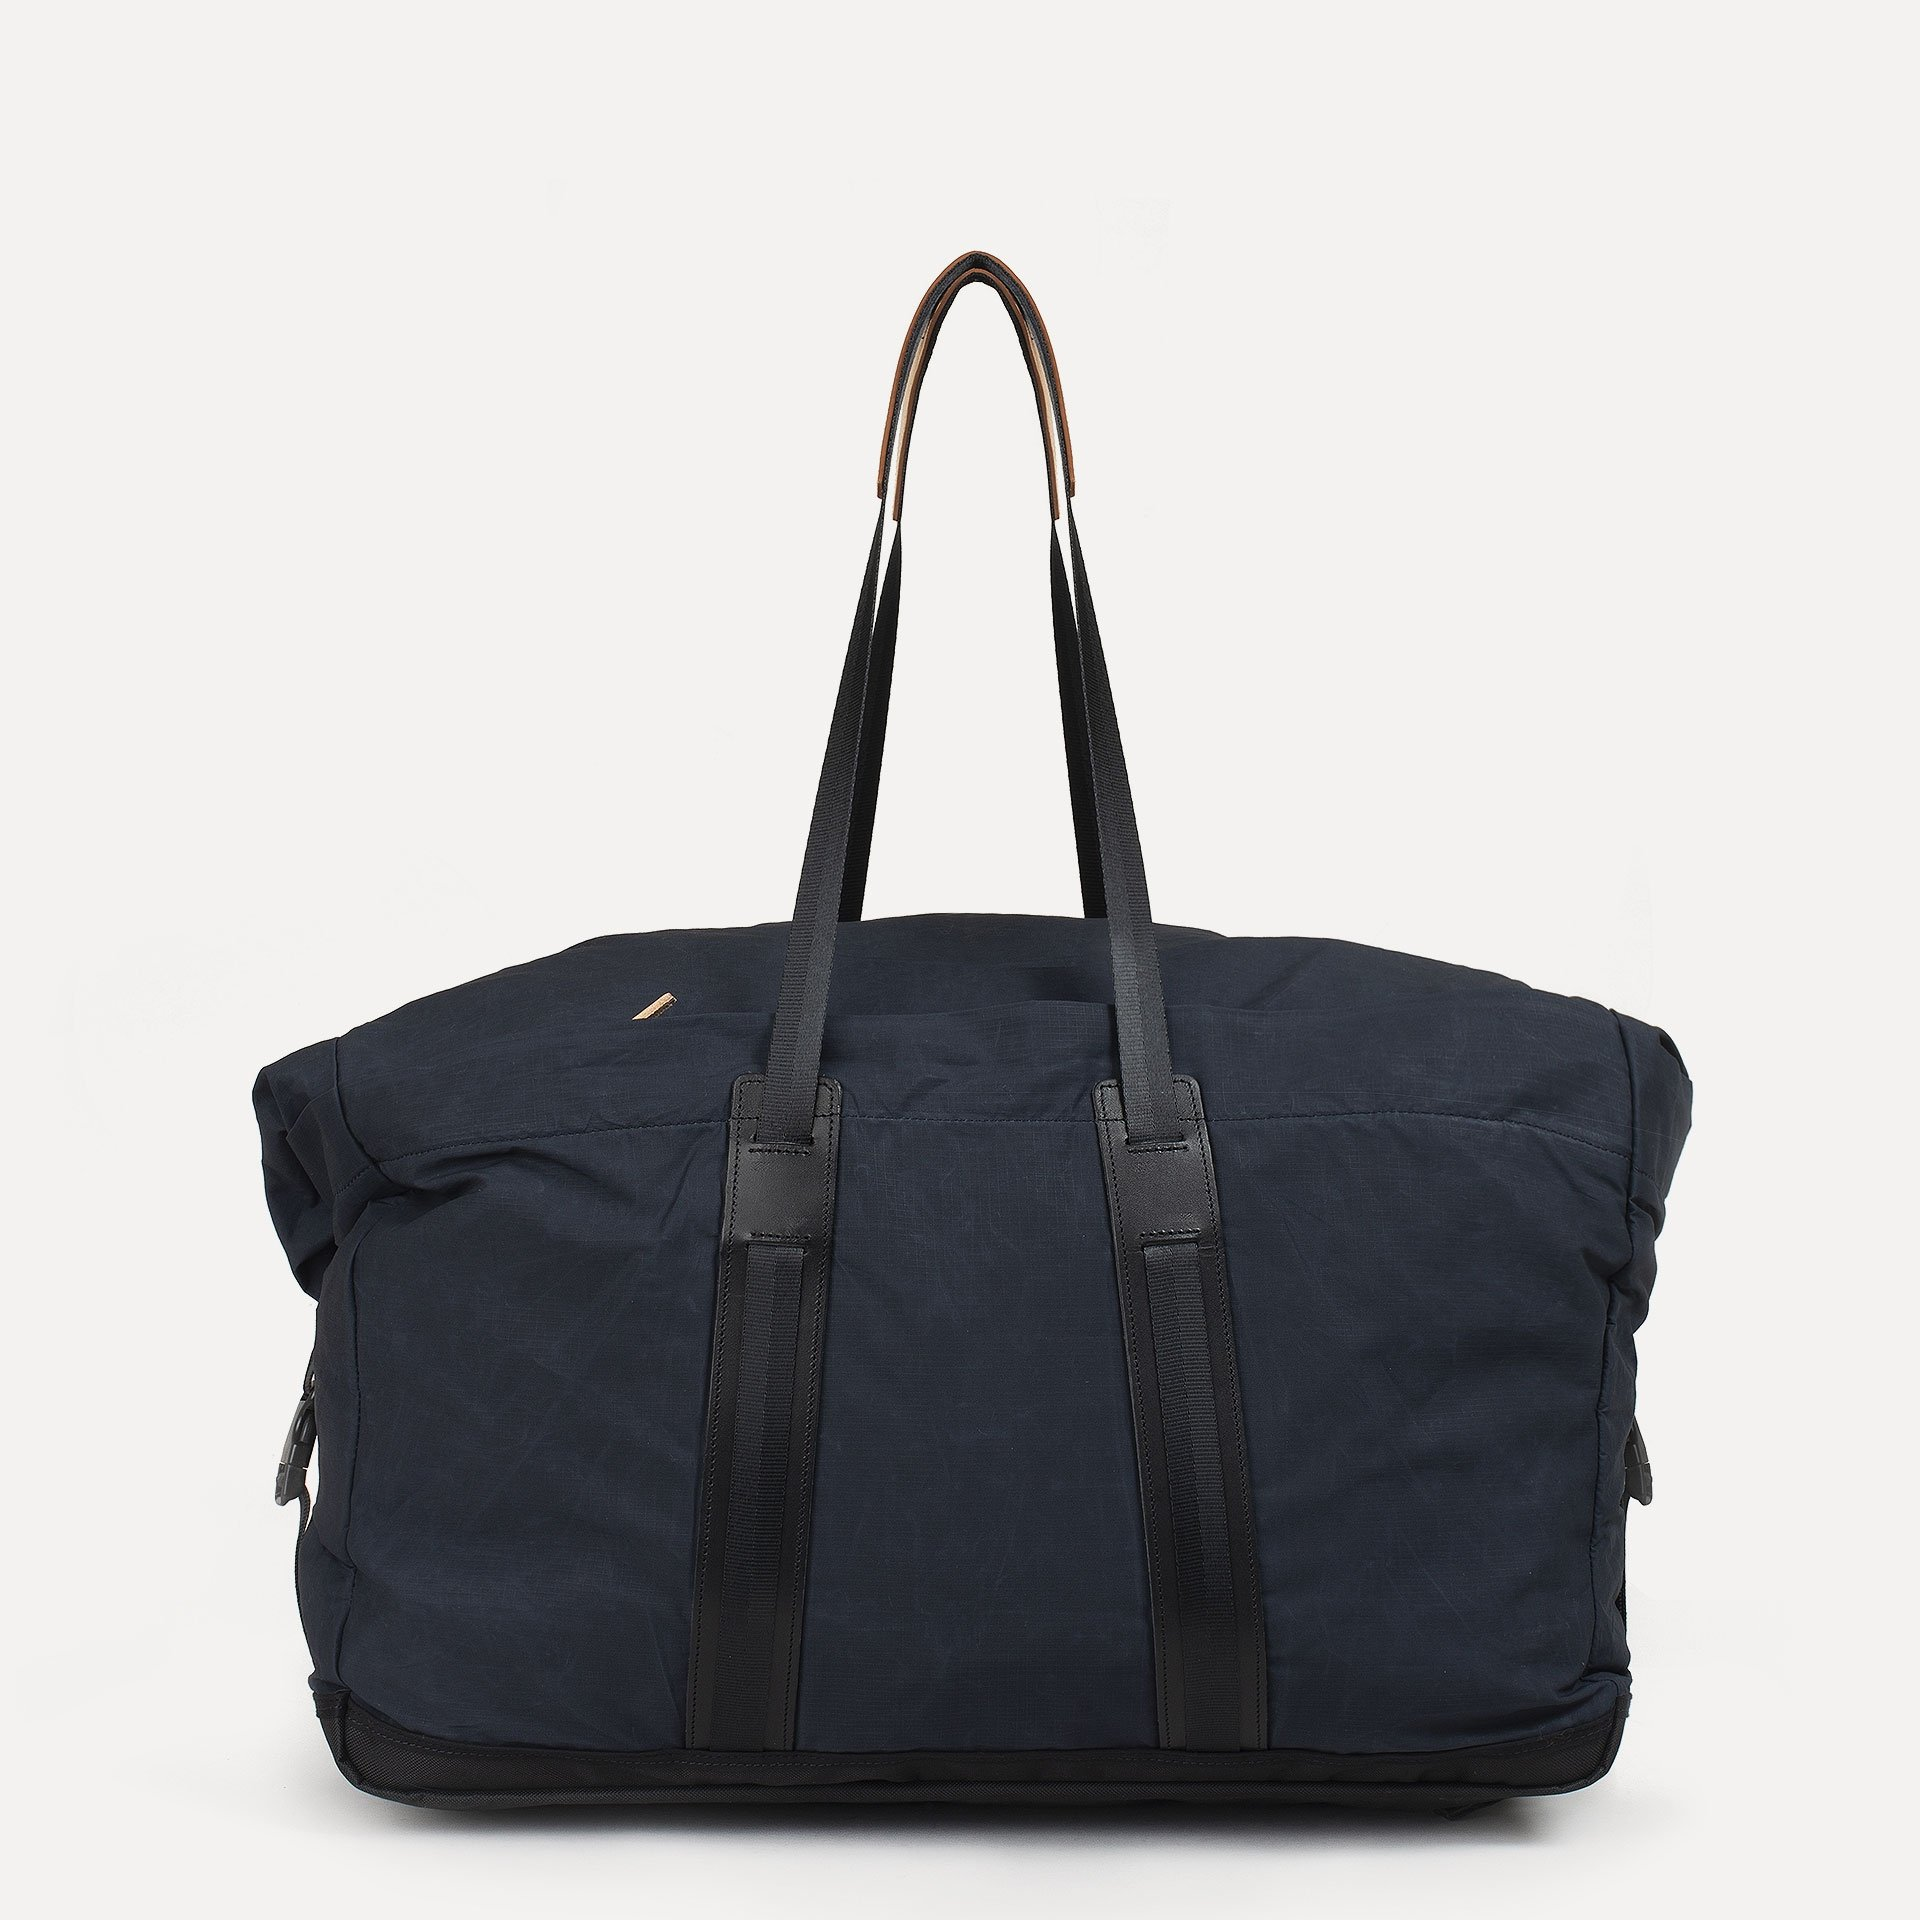 35L Baroud Travel bag - Hague Blue (image n°3)